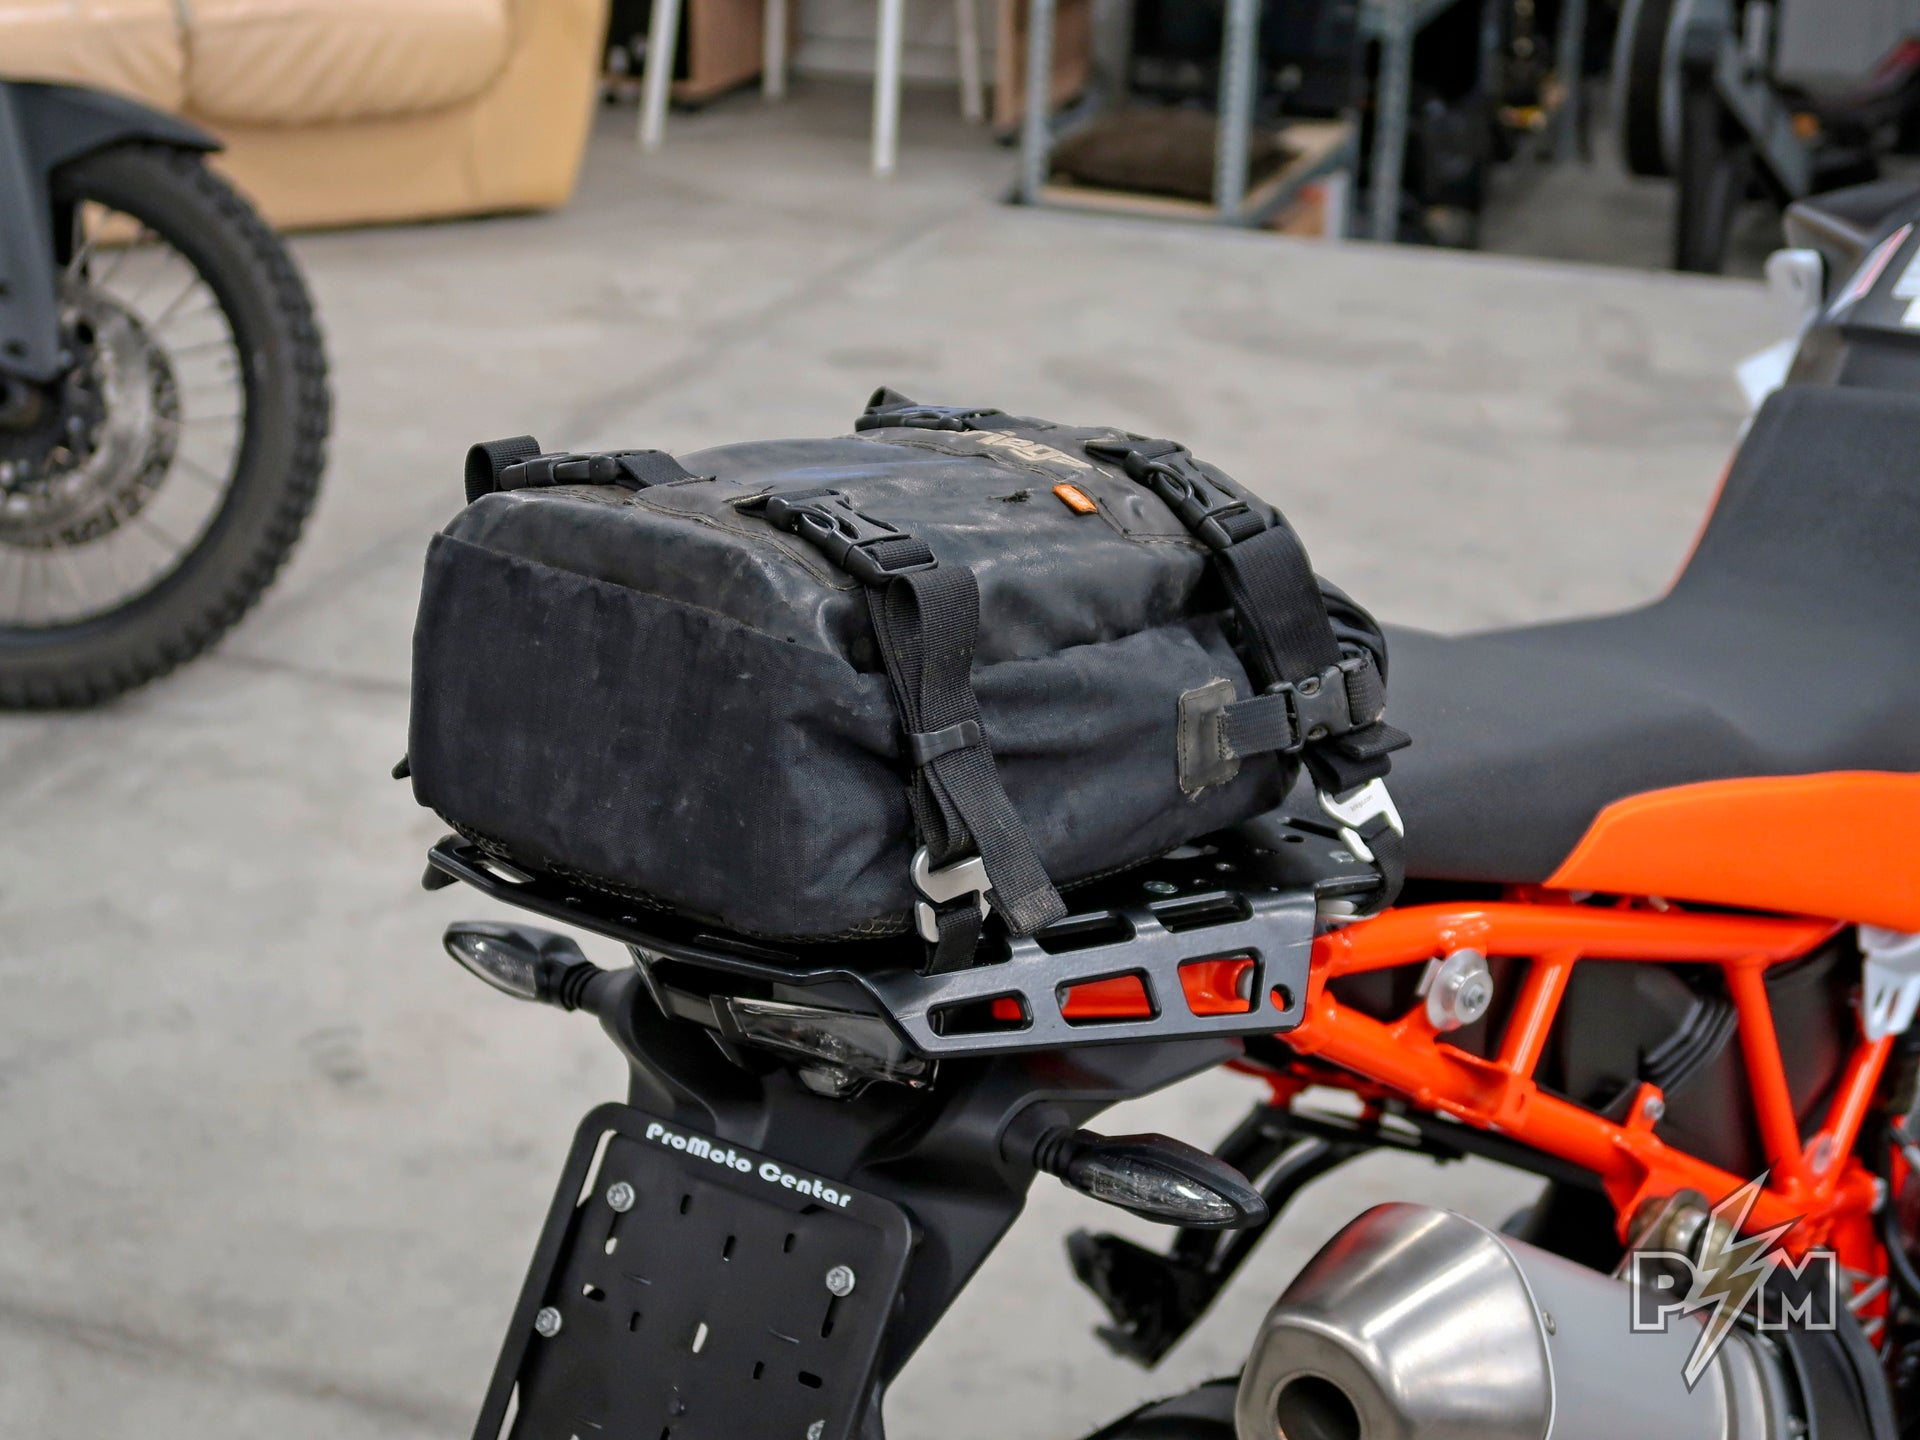 Kriega US bags on KTM 790 Adventure R